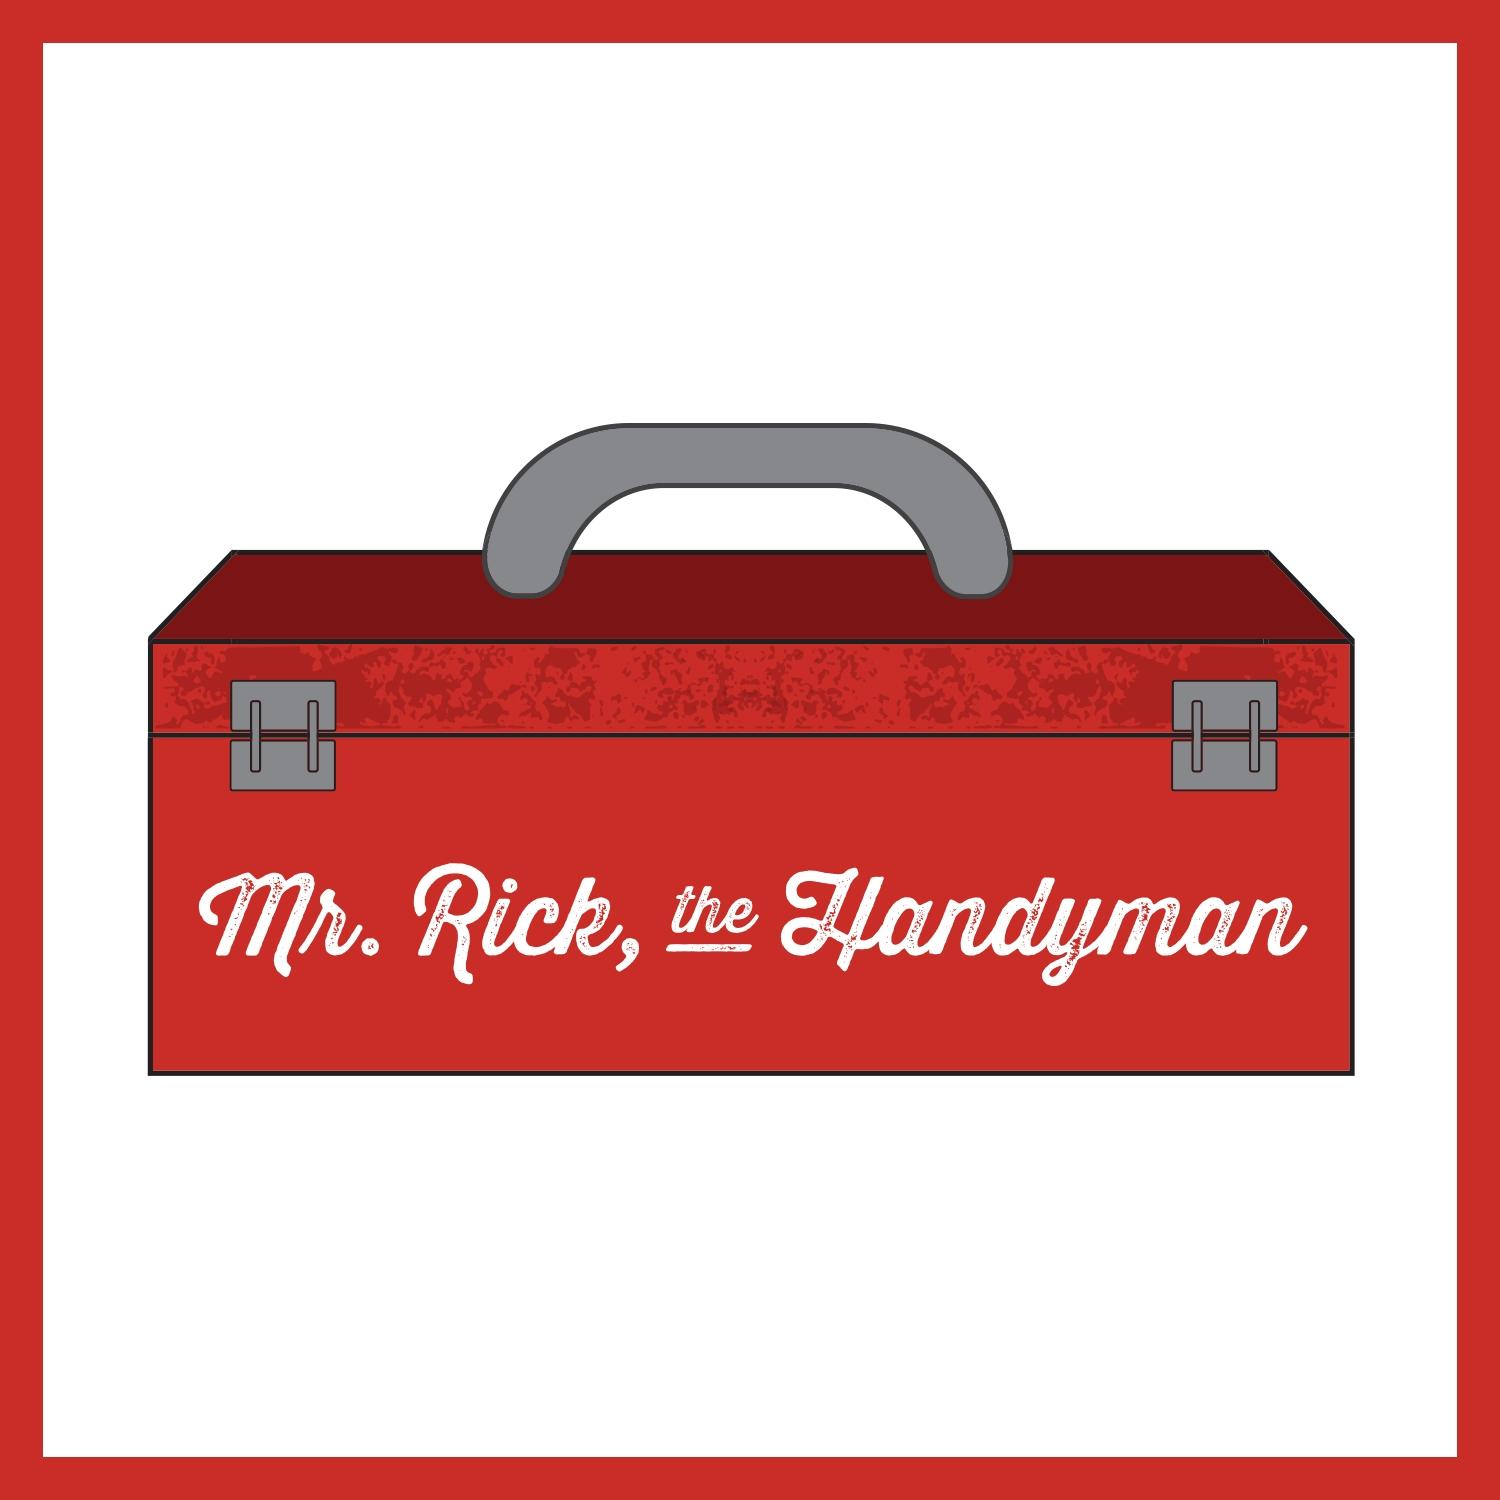 Mr. Rick the Handyman